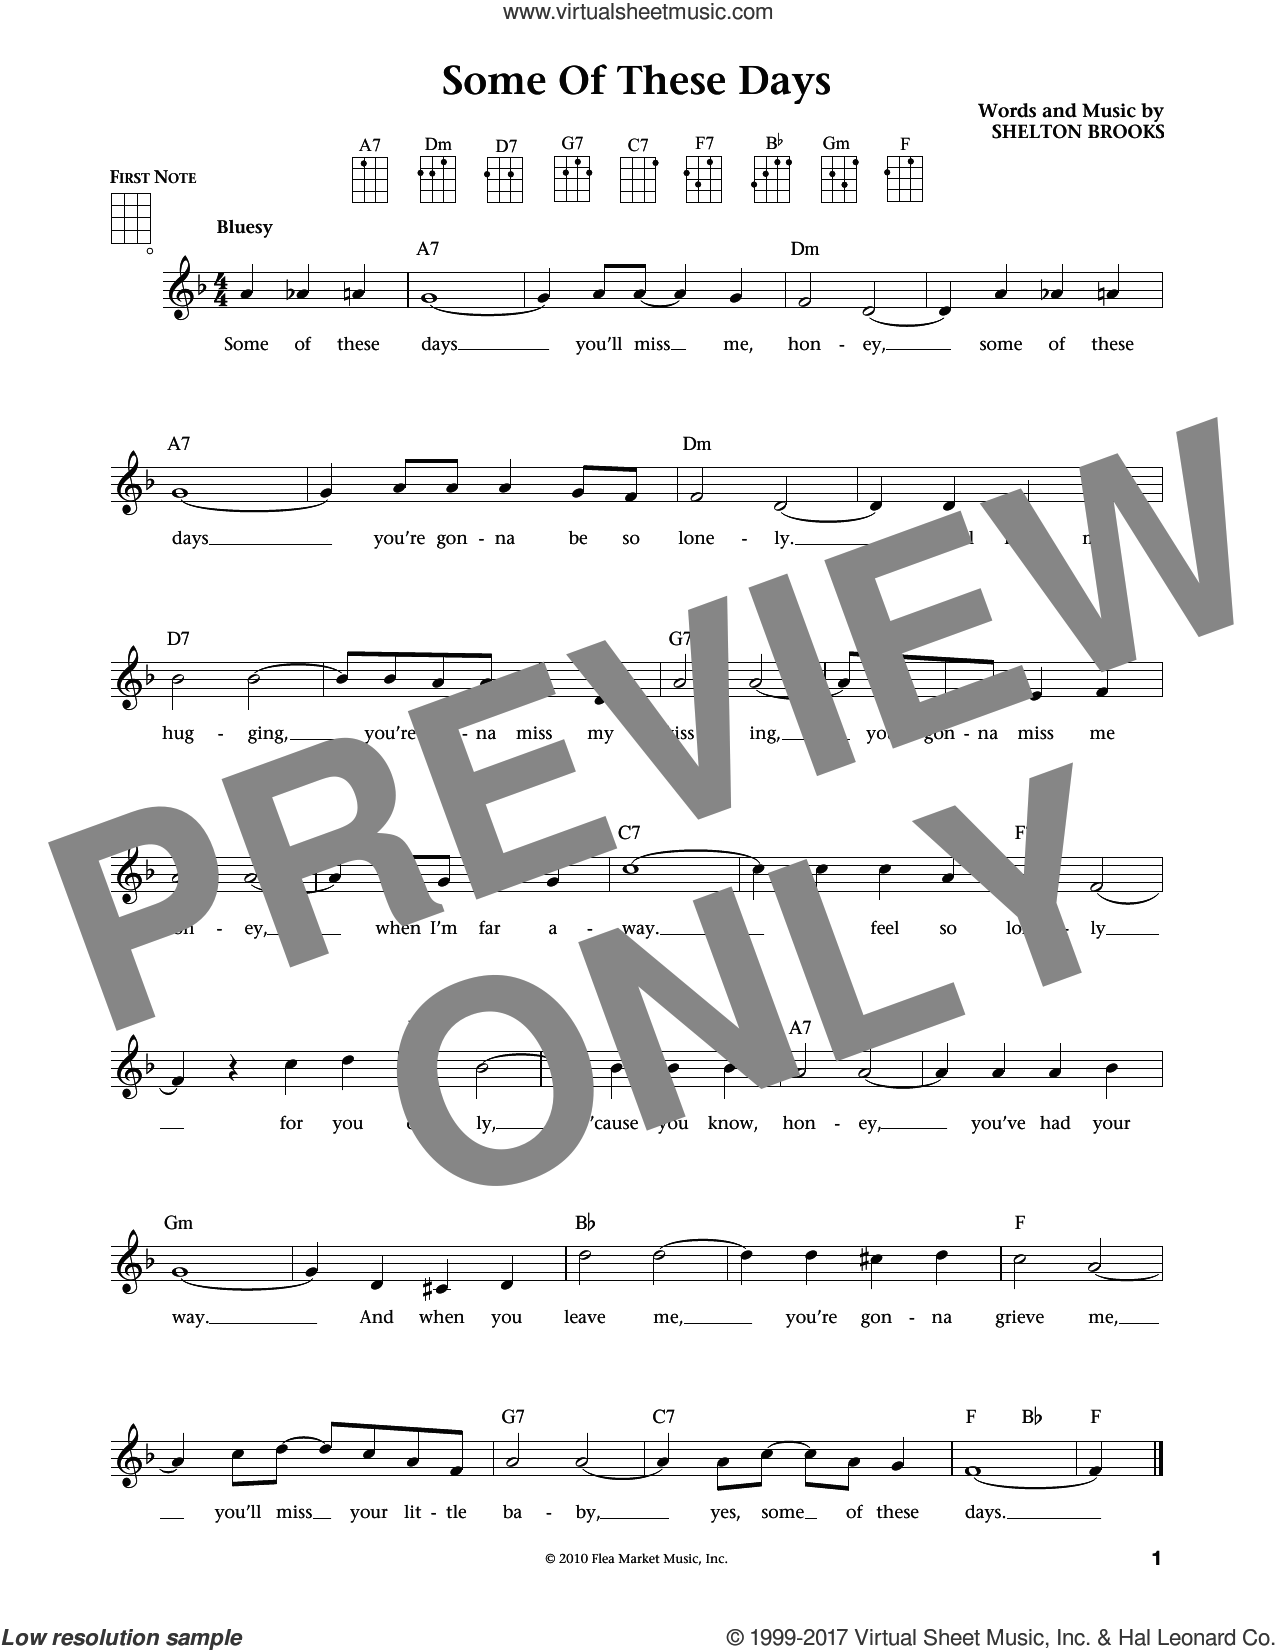 Some Of These Days sheet music for ukulele by Shelton Brooks, Jim Beloff, Liz Beloff and Sophie Tucker, intermediate skill level